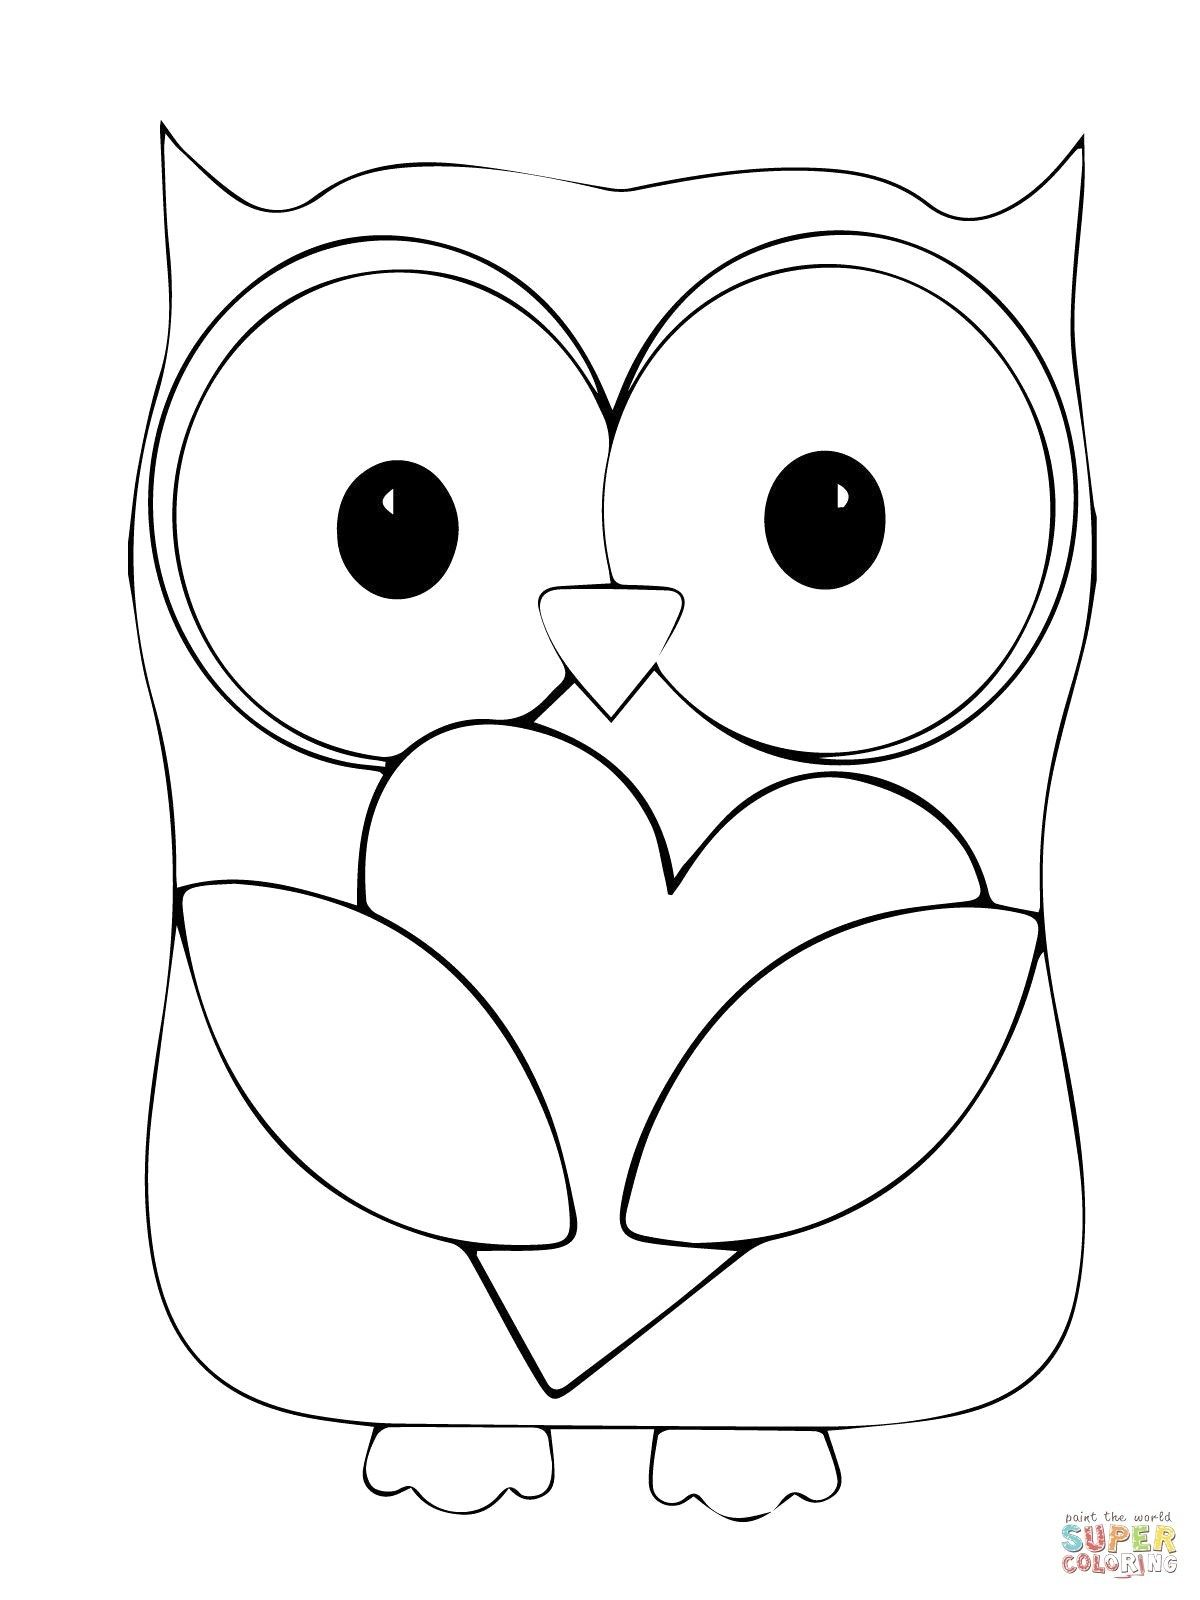 Wonderful Image Of Owls Coloring Pages With Images